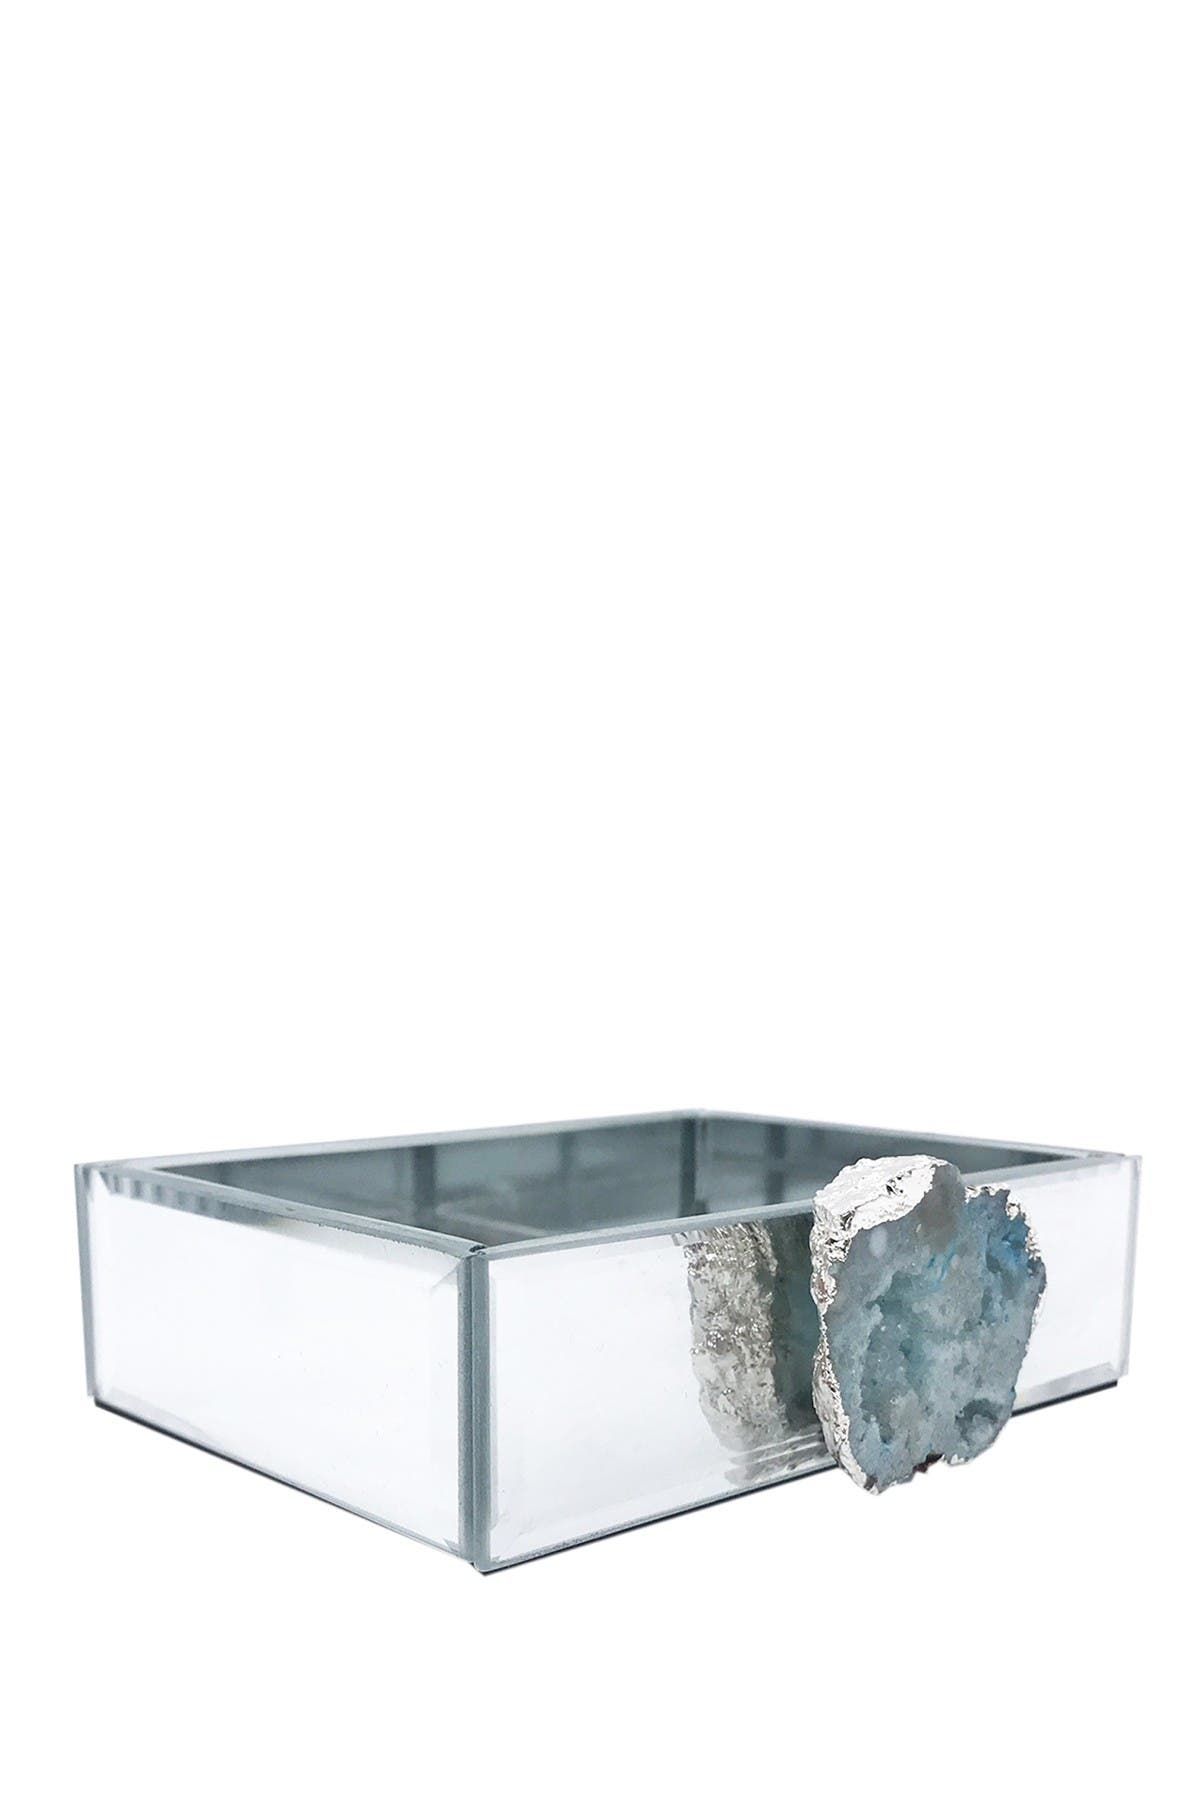 Image of Jay Import Teal/Silver Agate Mirrored Soap Dish